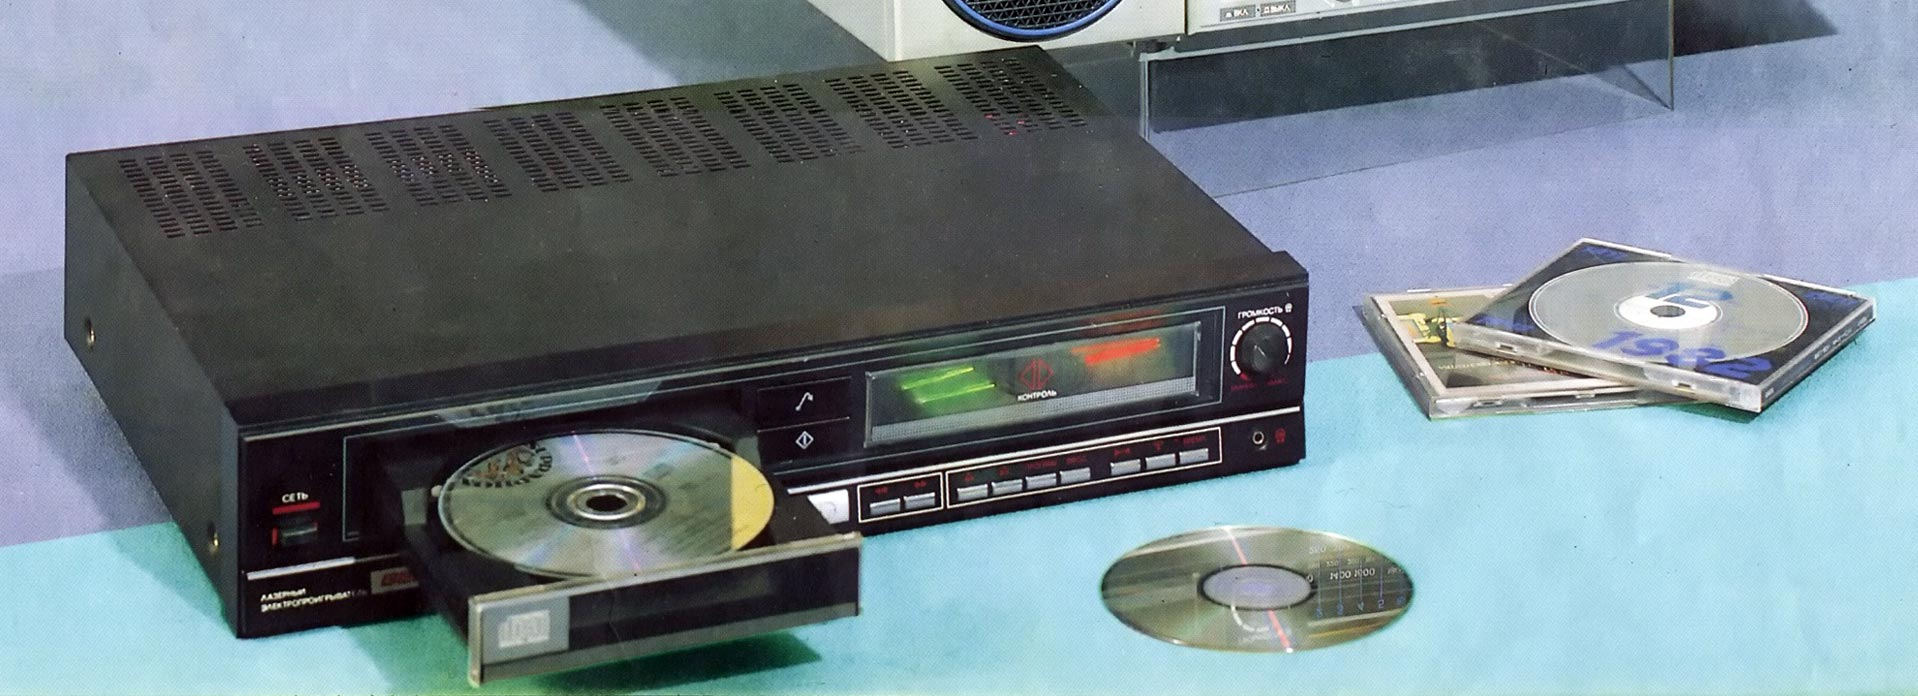 Gadgets from the USSR